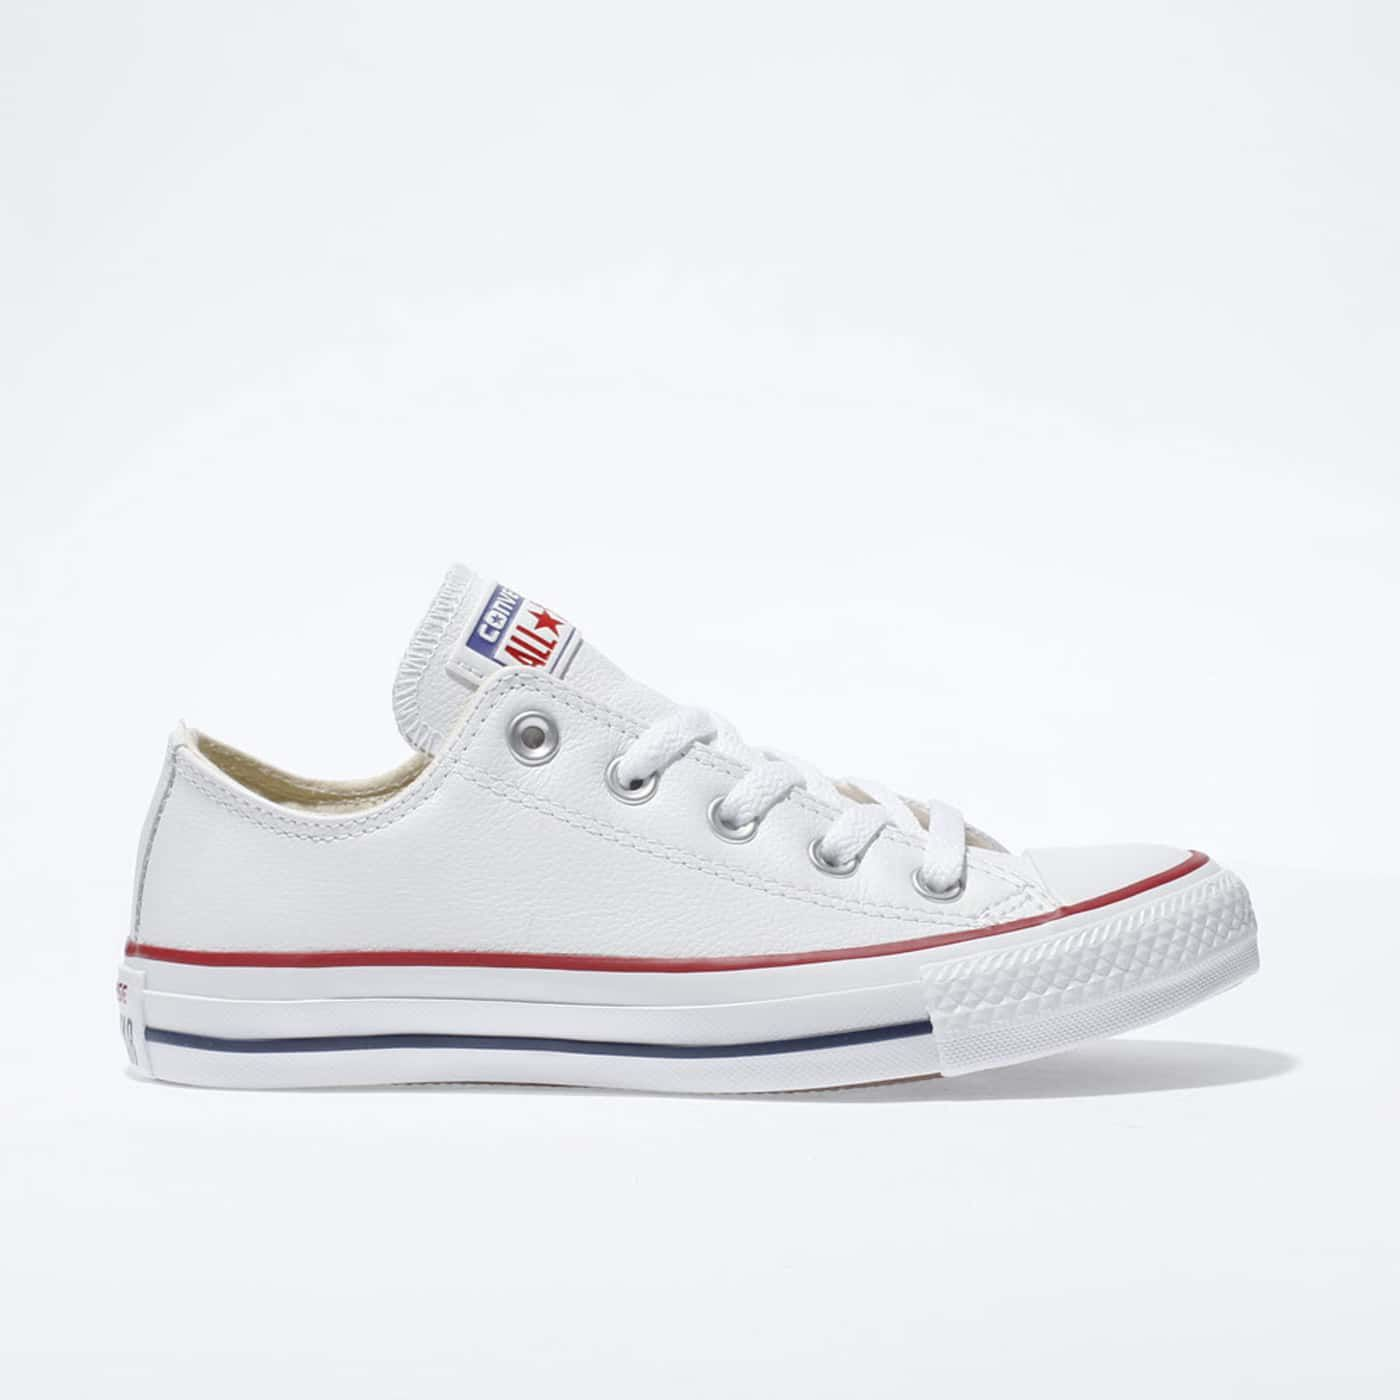 white converse all star oxford leather trainers sneaker trends in